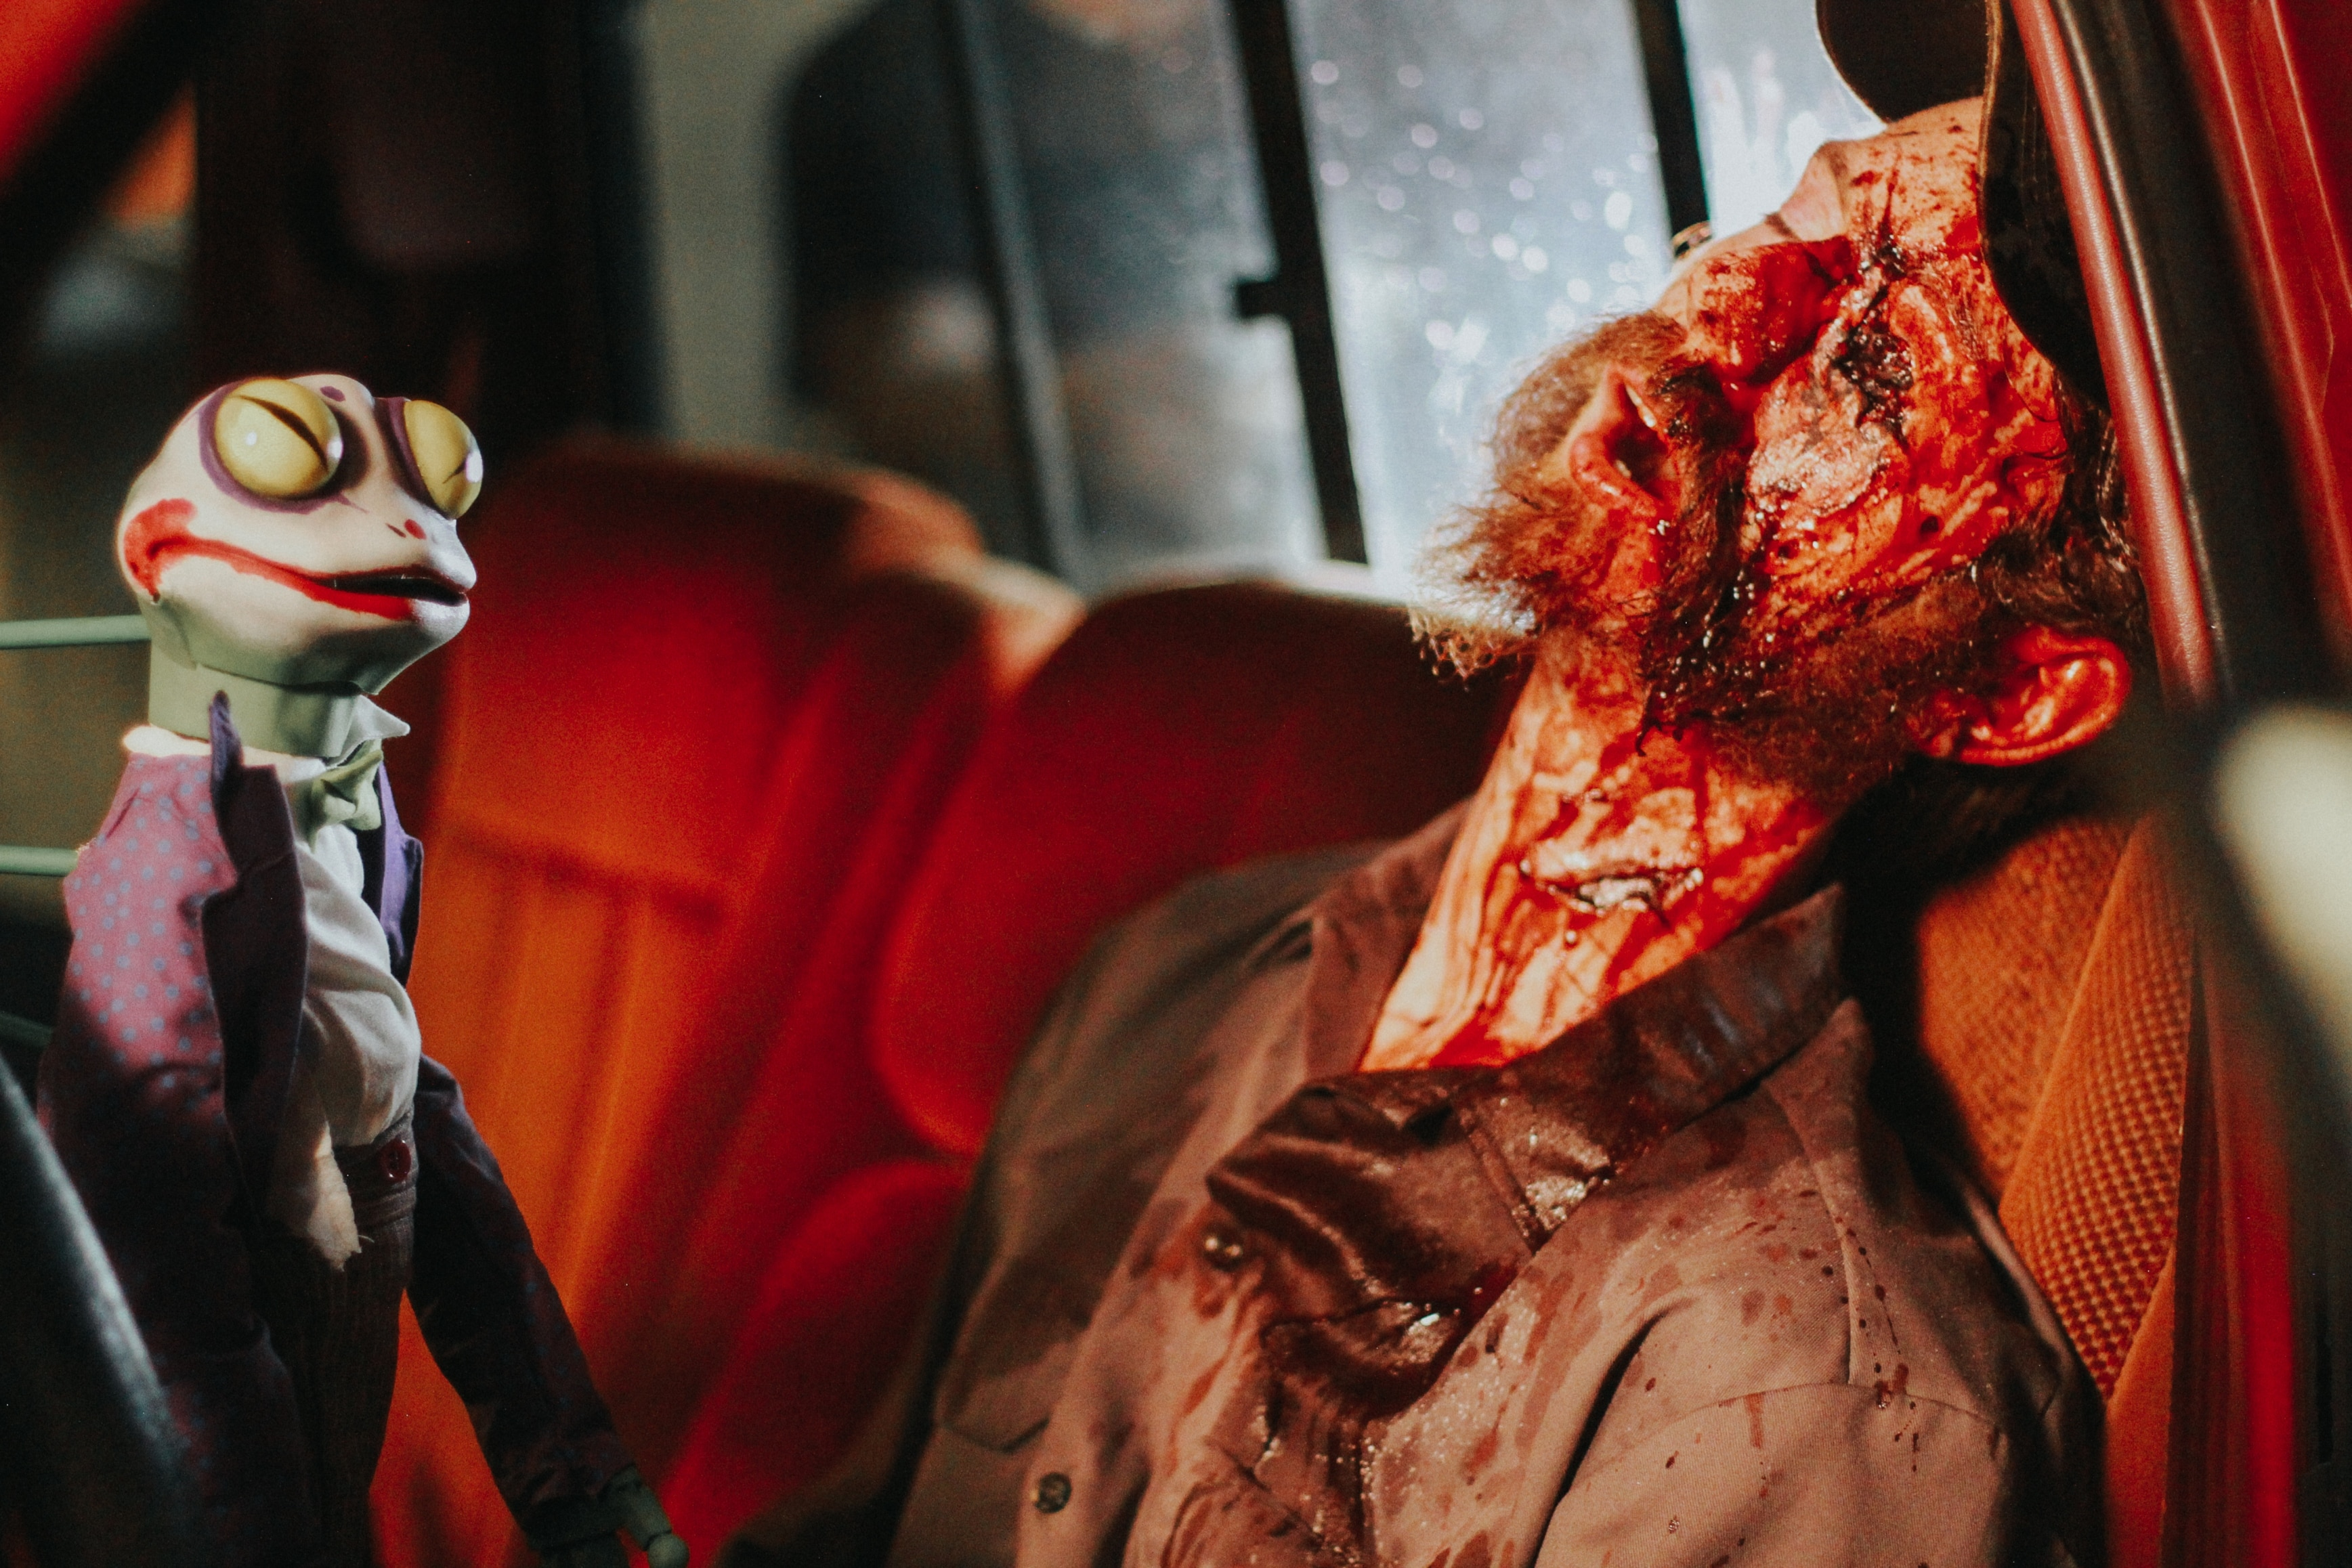 Puppet Master The Littlest Reich 2 - FrightFest 2018: 19th Year's Line-Up Revealed With 20 World Premieres!